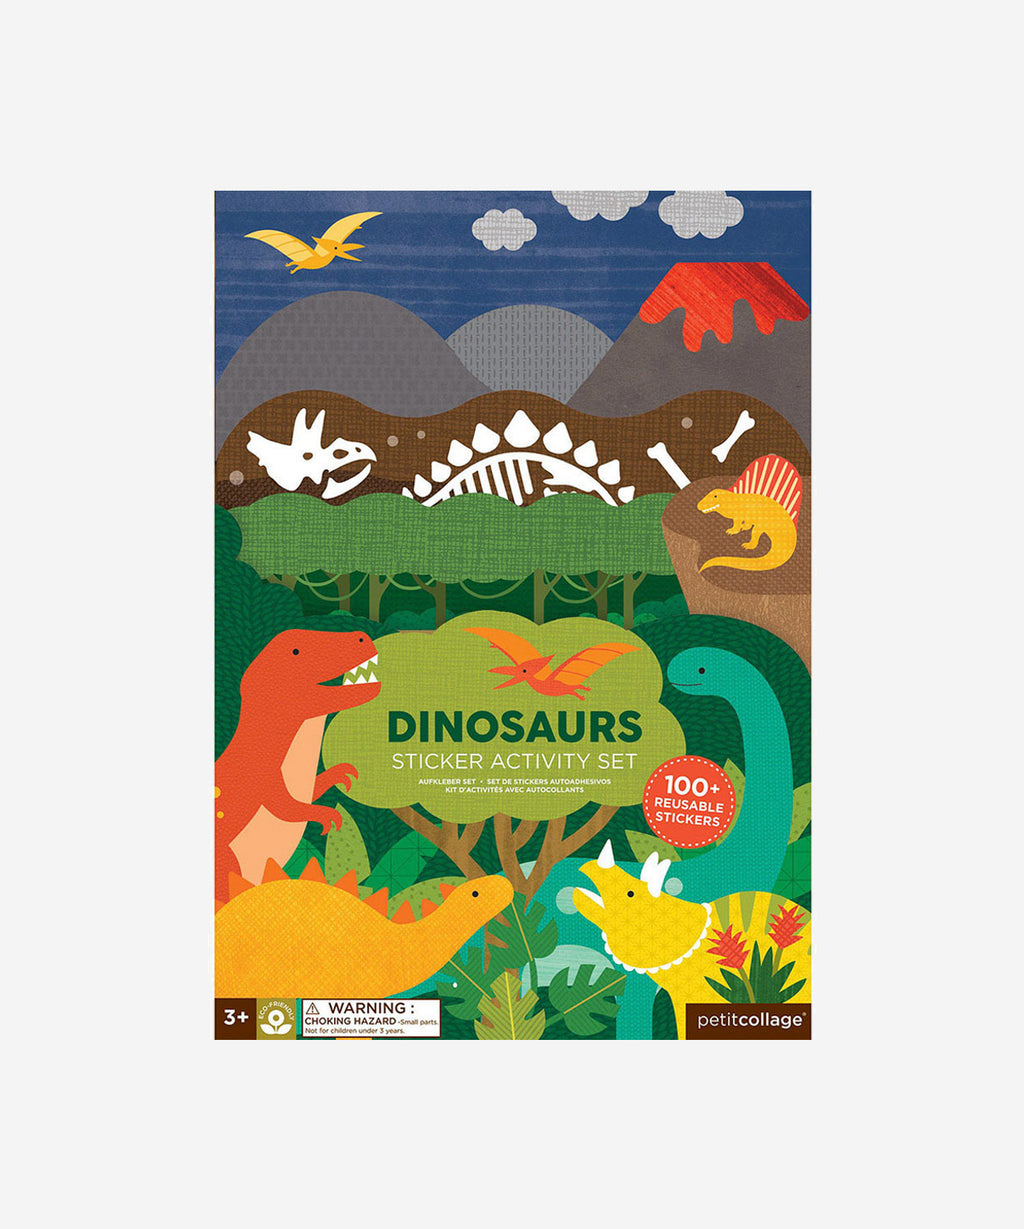 Petitcollage - Sticker Activity Set - Dinosaurs